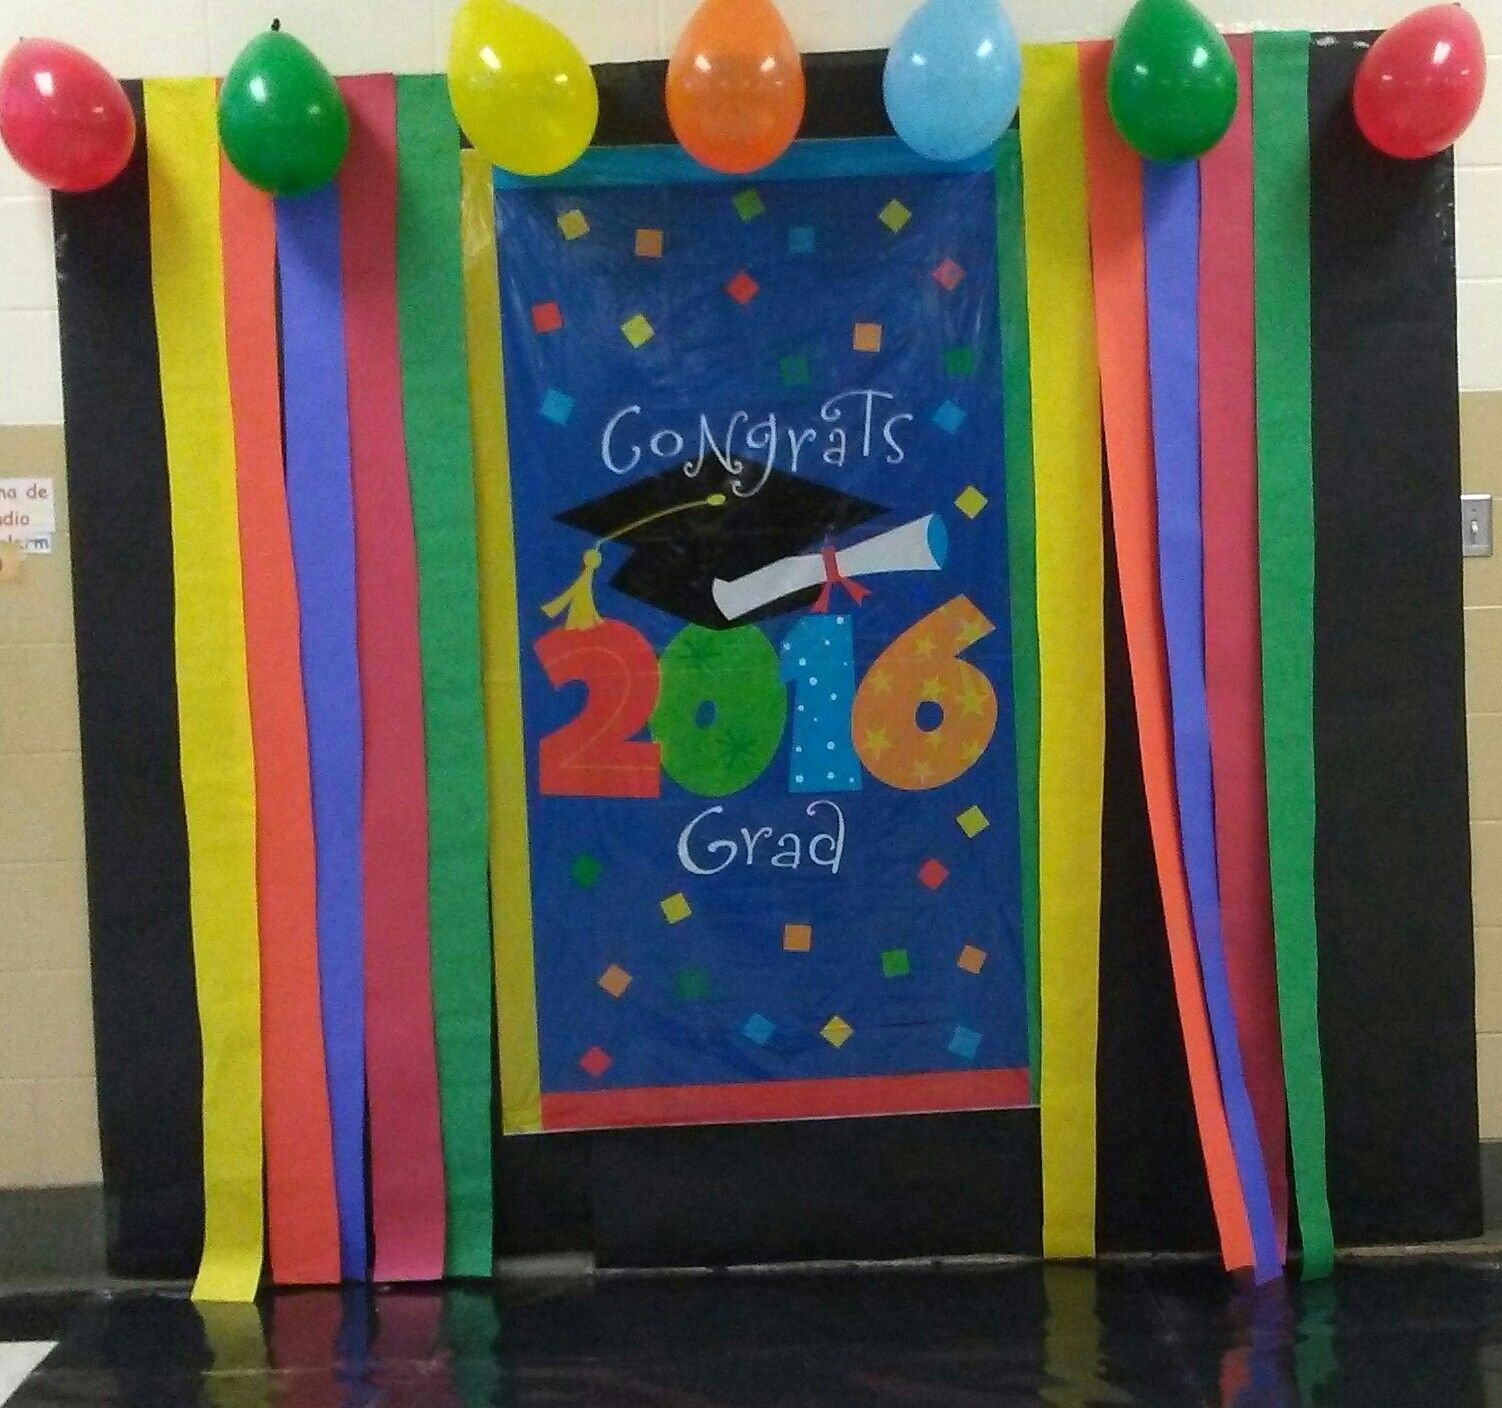 Pre Kinder Graduation Backdrop Preschool Graduation Theme Kindergarten Graduation Decorations Kindergarten Graduation